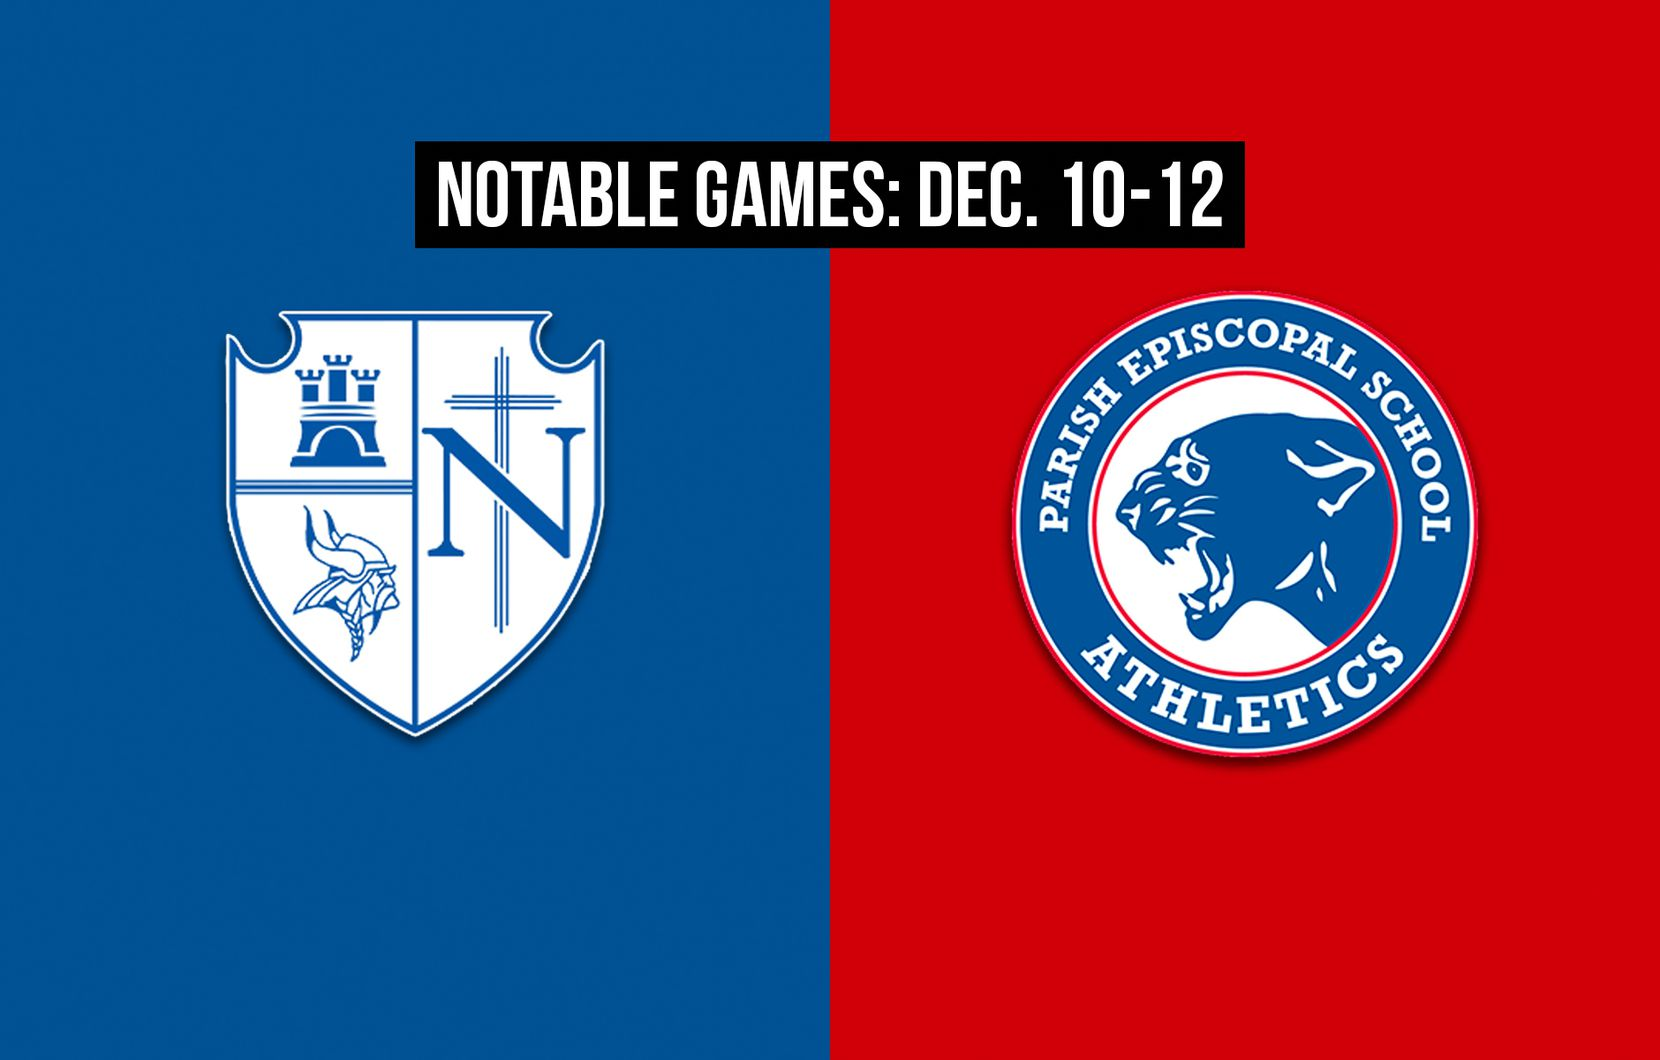 Notable games for the week of Dec. 10-12 of the 2020 season: Fort Worth Nolan vs. Parish Episcopal.